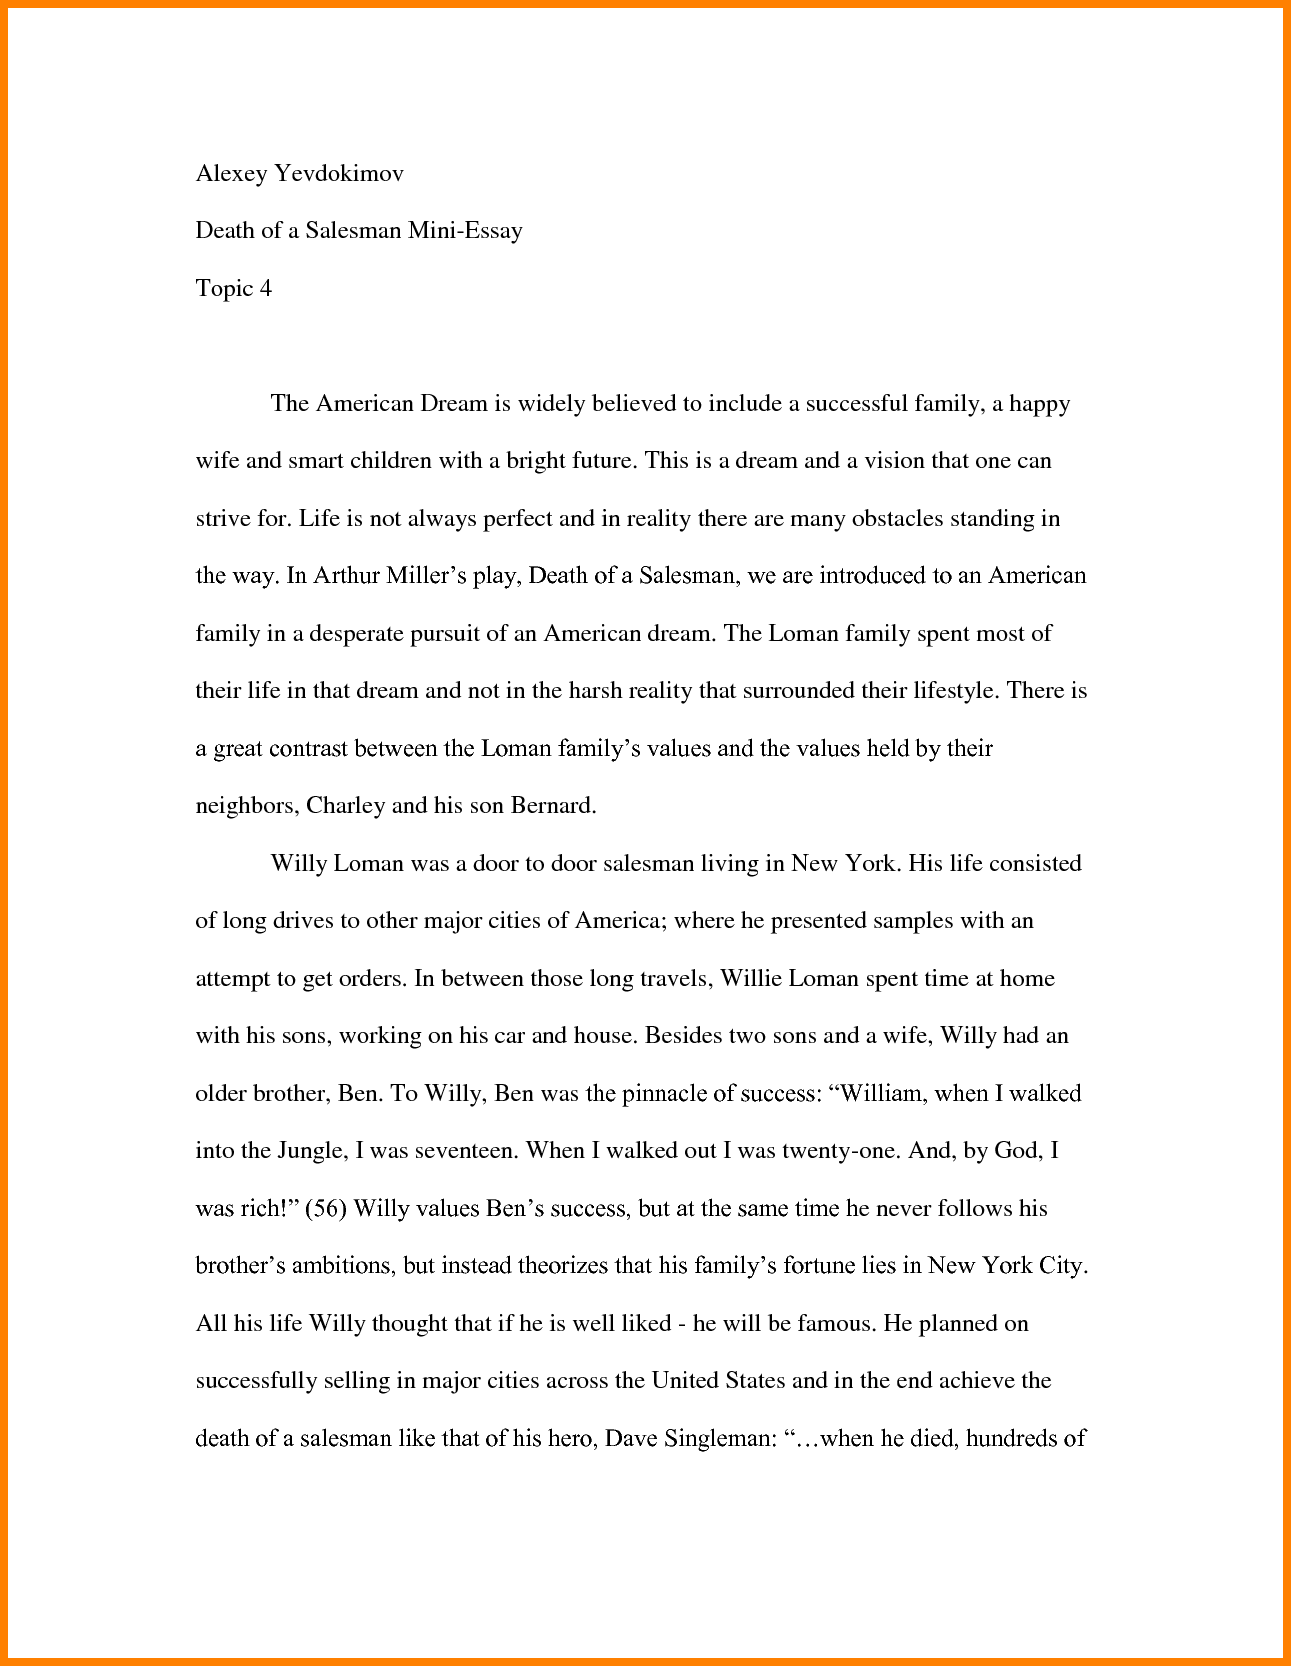 004 Essay Example How To Start Off An About Yourself Amazing With A Hook Quote Analysis On Book Full